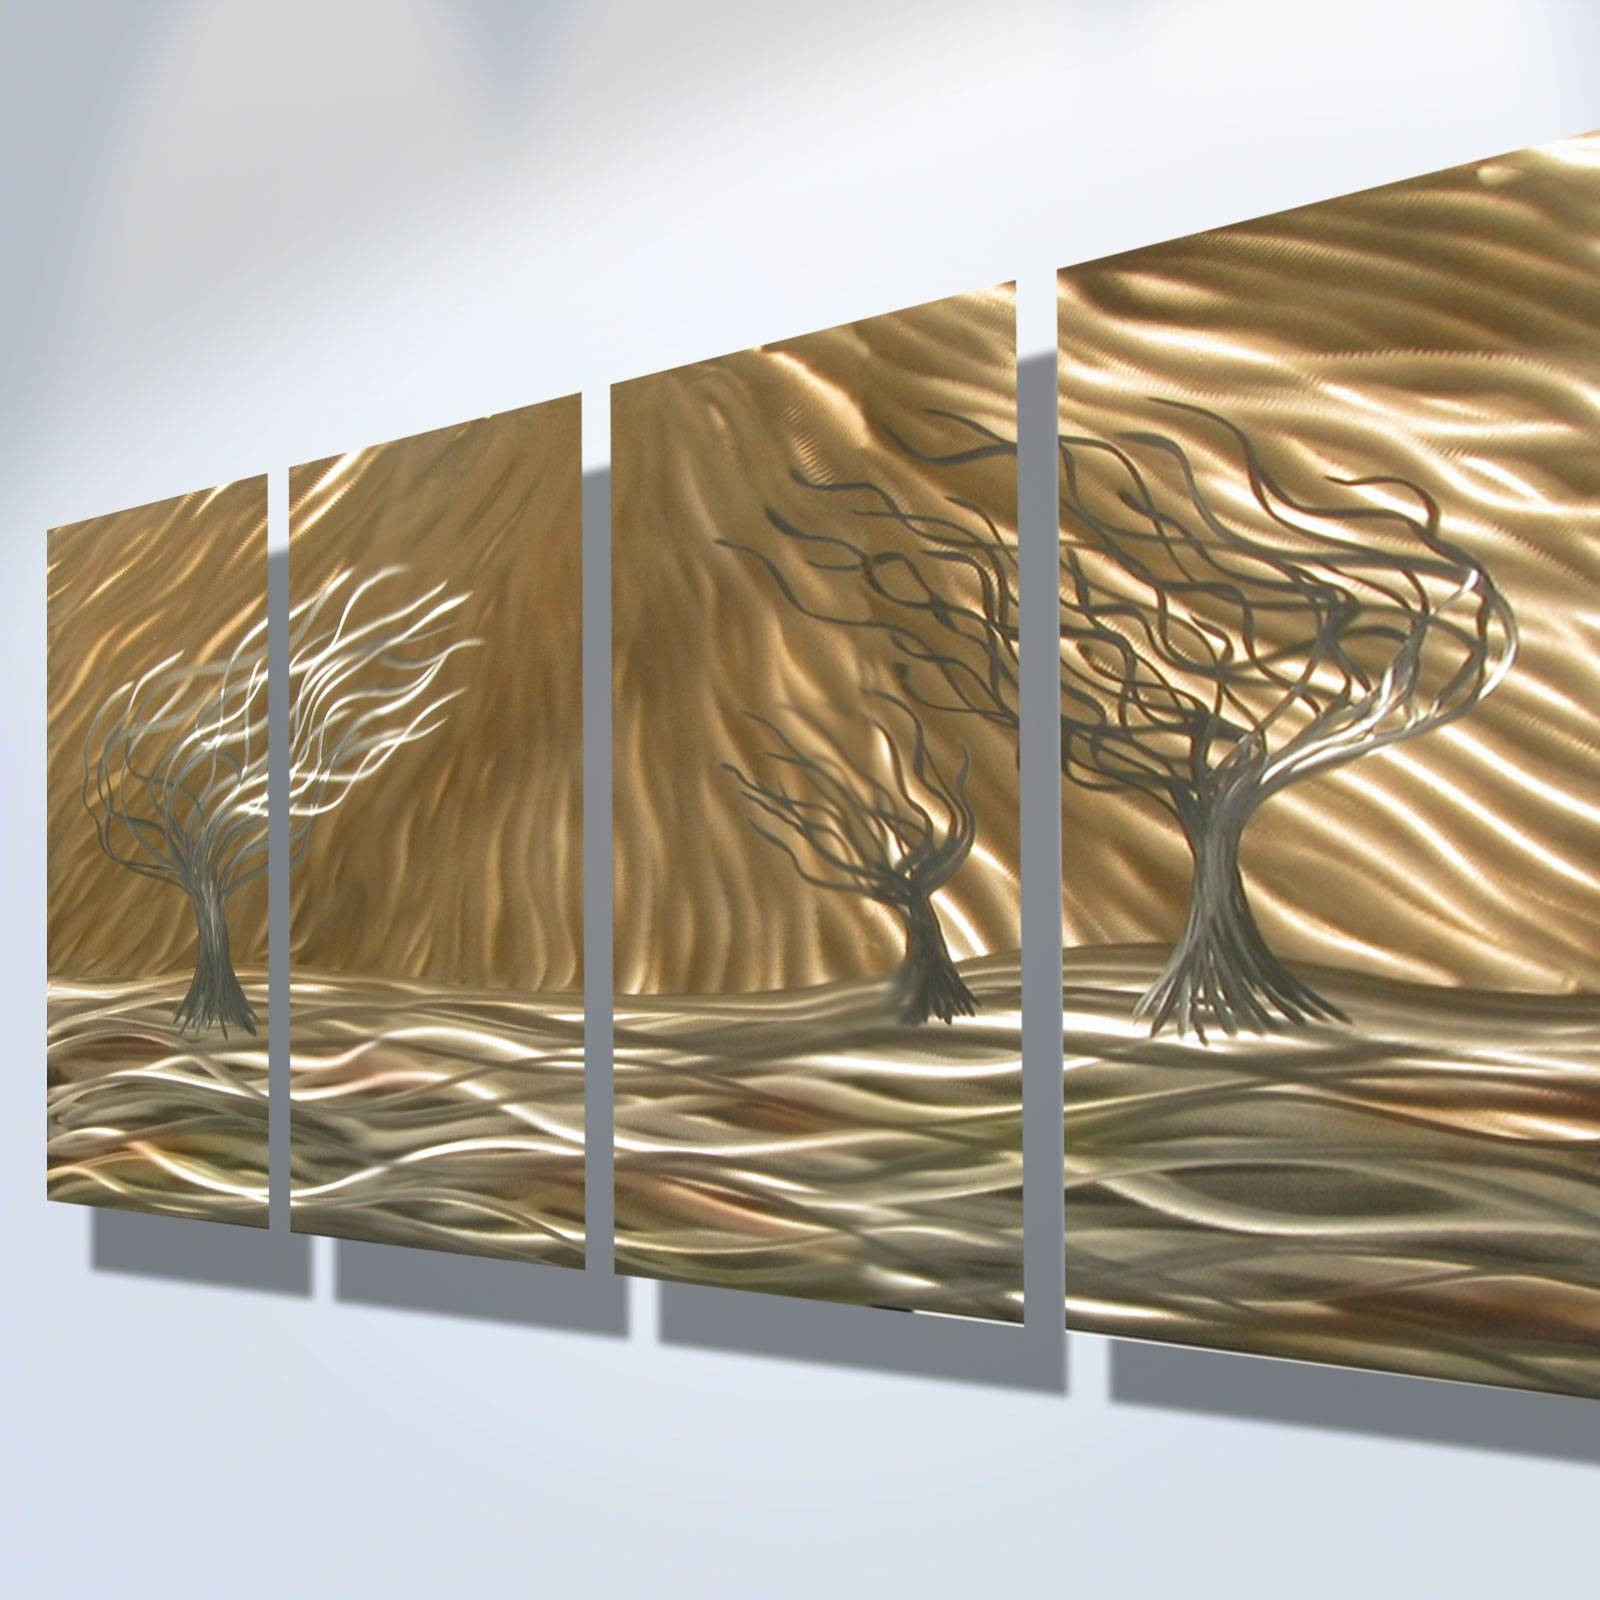 3 Trees 4 Panel – Abstract Metal Wall Art Contemporary Modern Inside Current Gold Metal Wall Art (View 12 of 20)